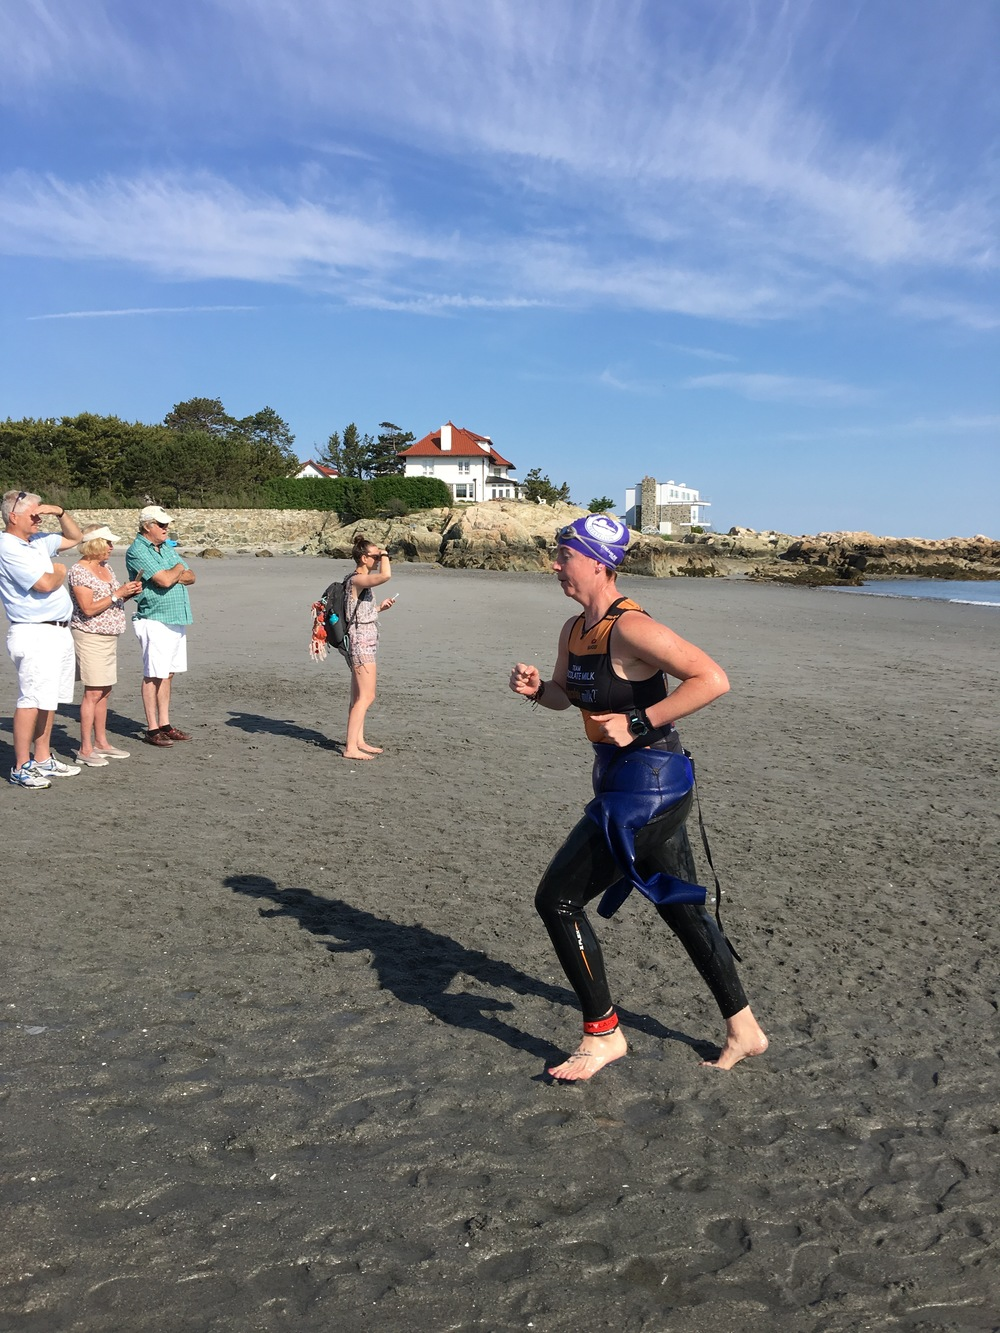 triathlon 1/4 ironman